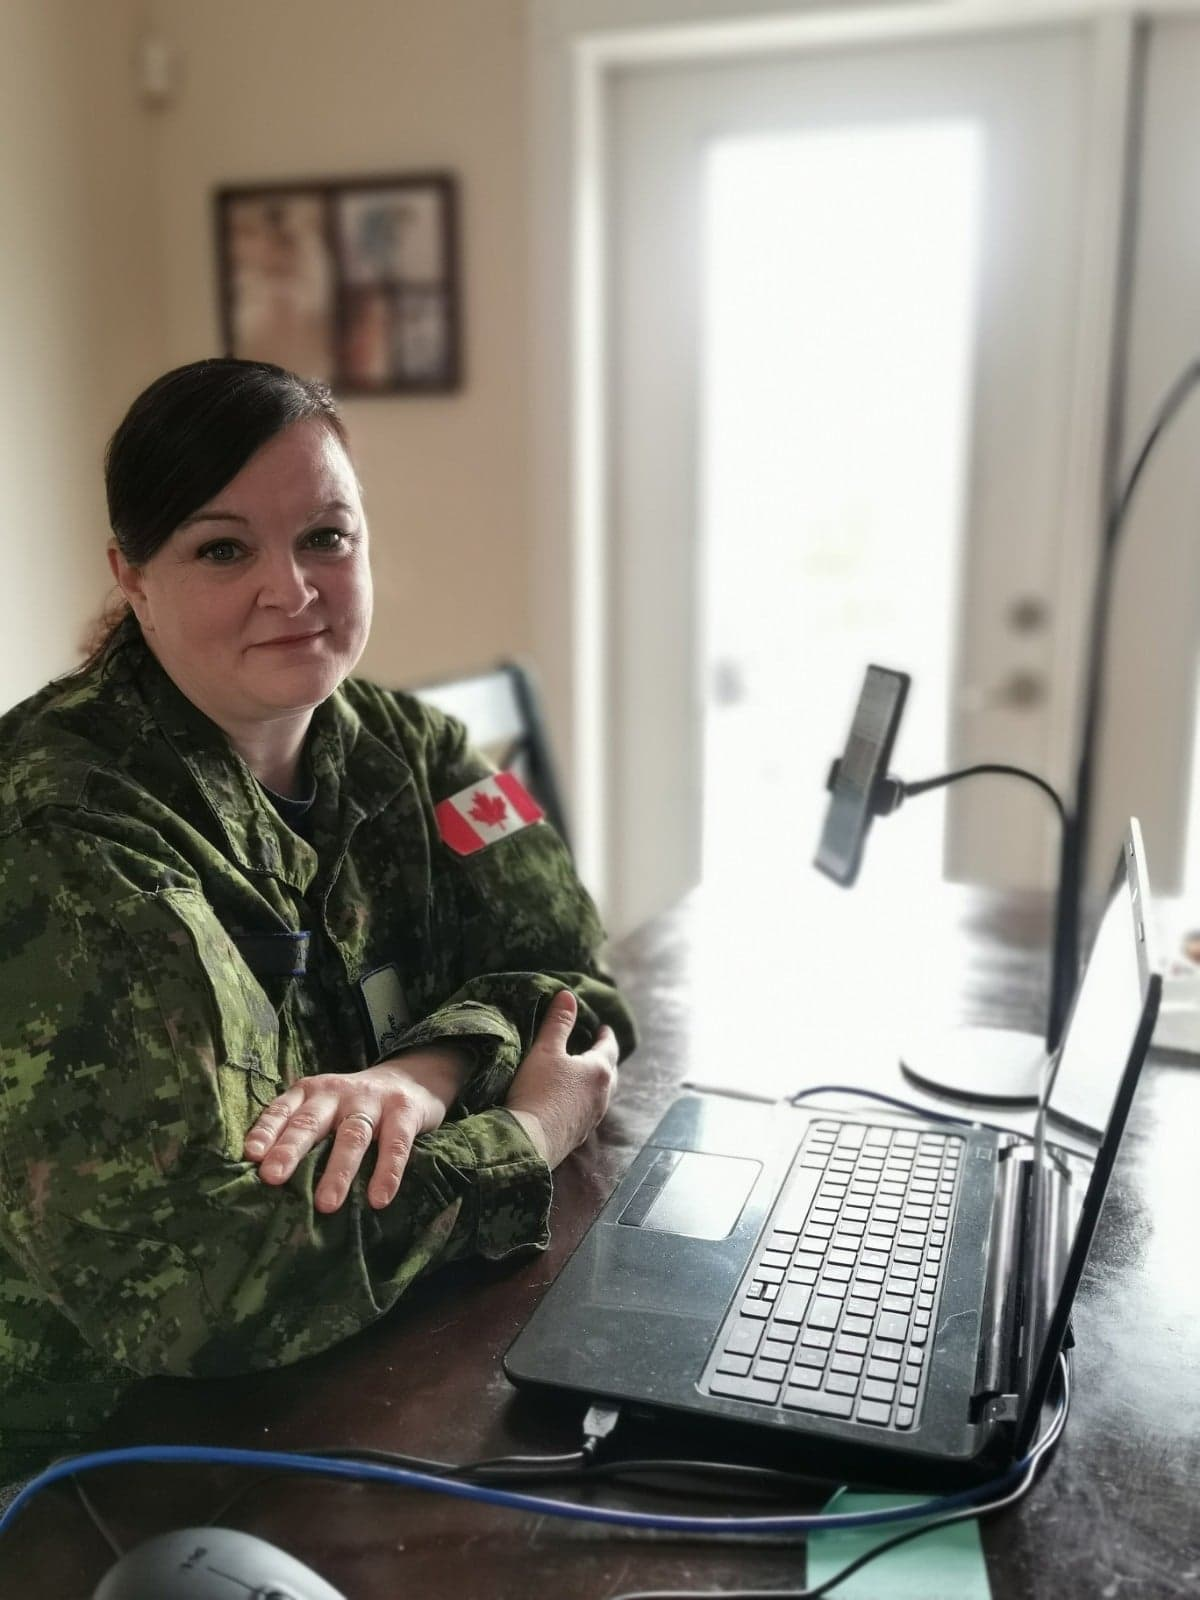 A woman wearing a disruptive pattern uniform sits at a desk with a laptop.